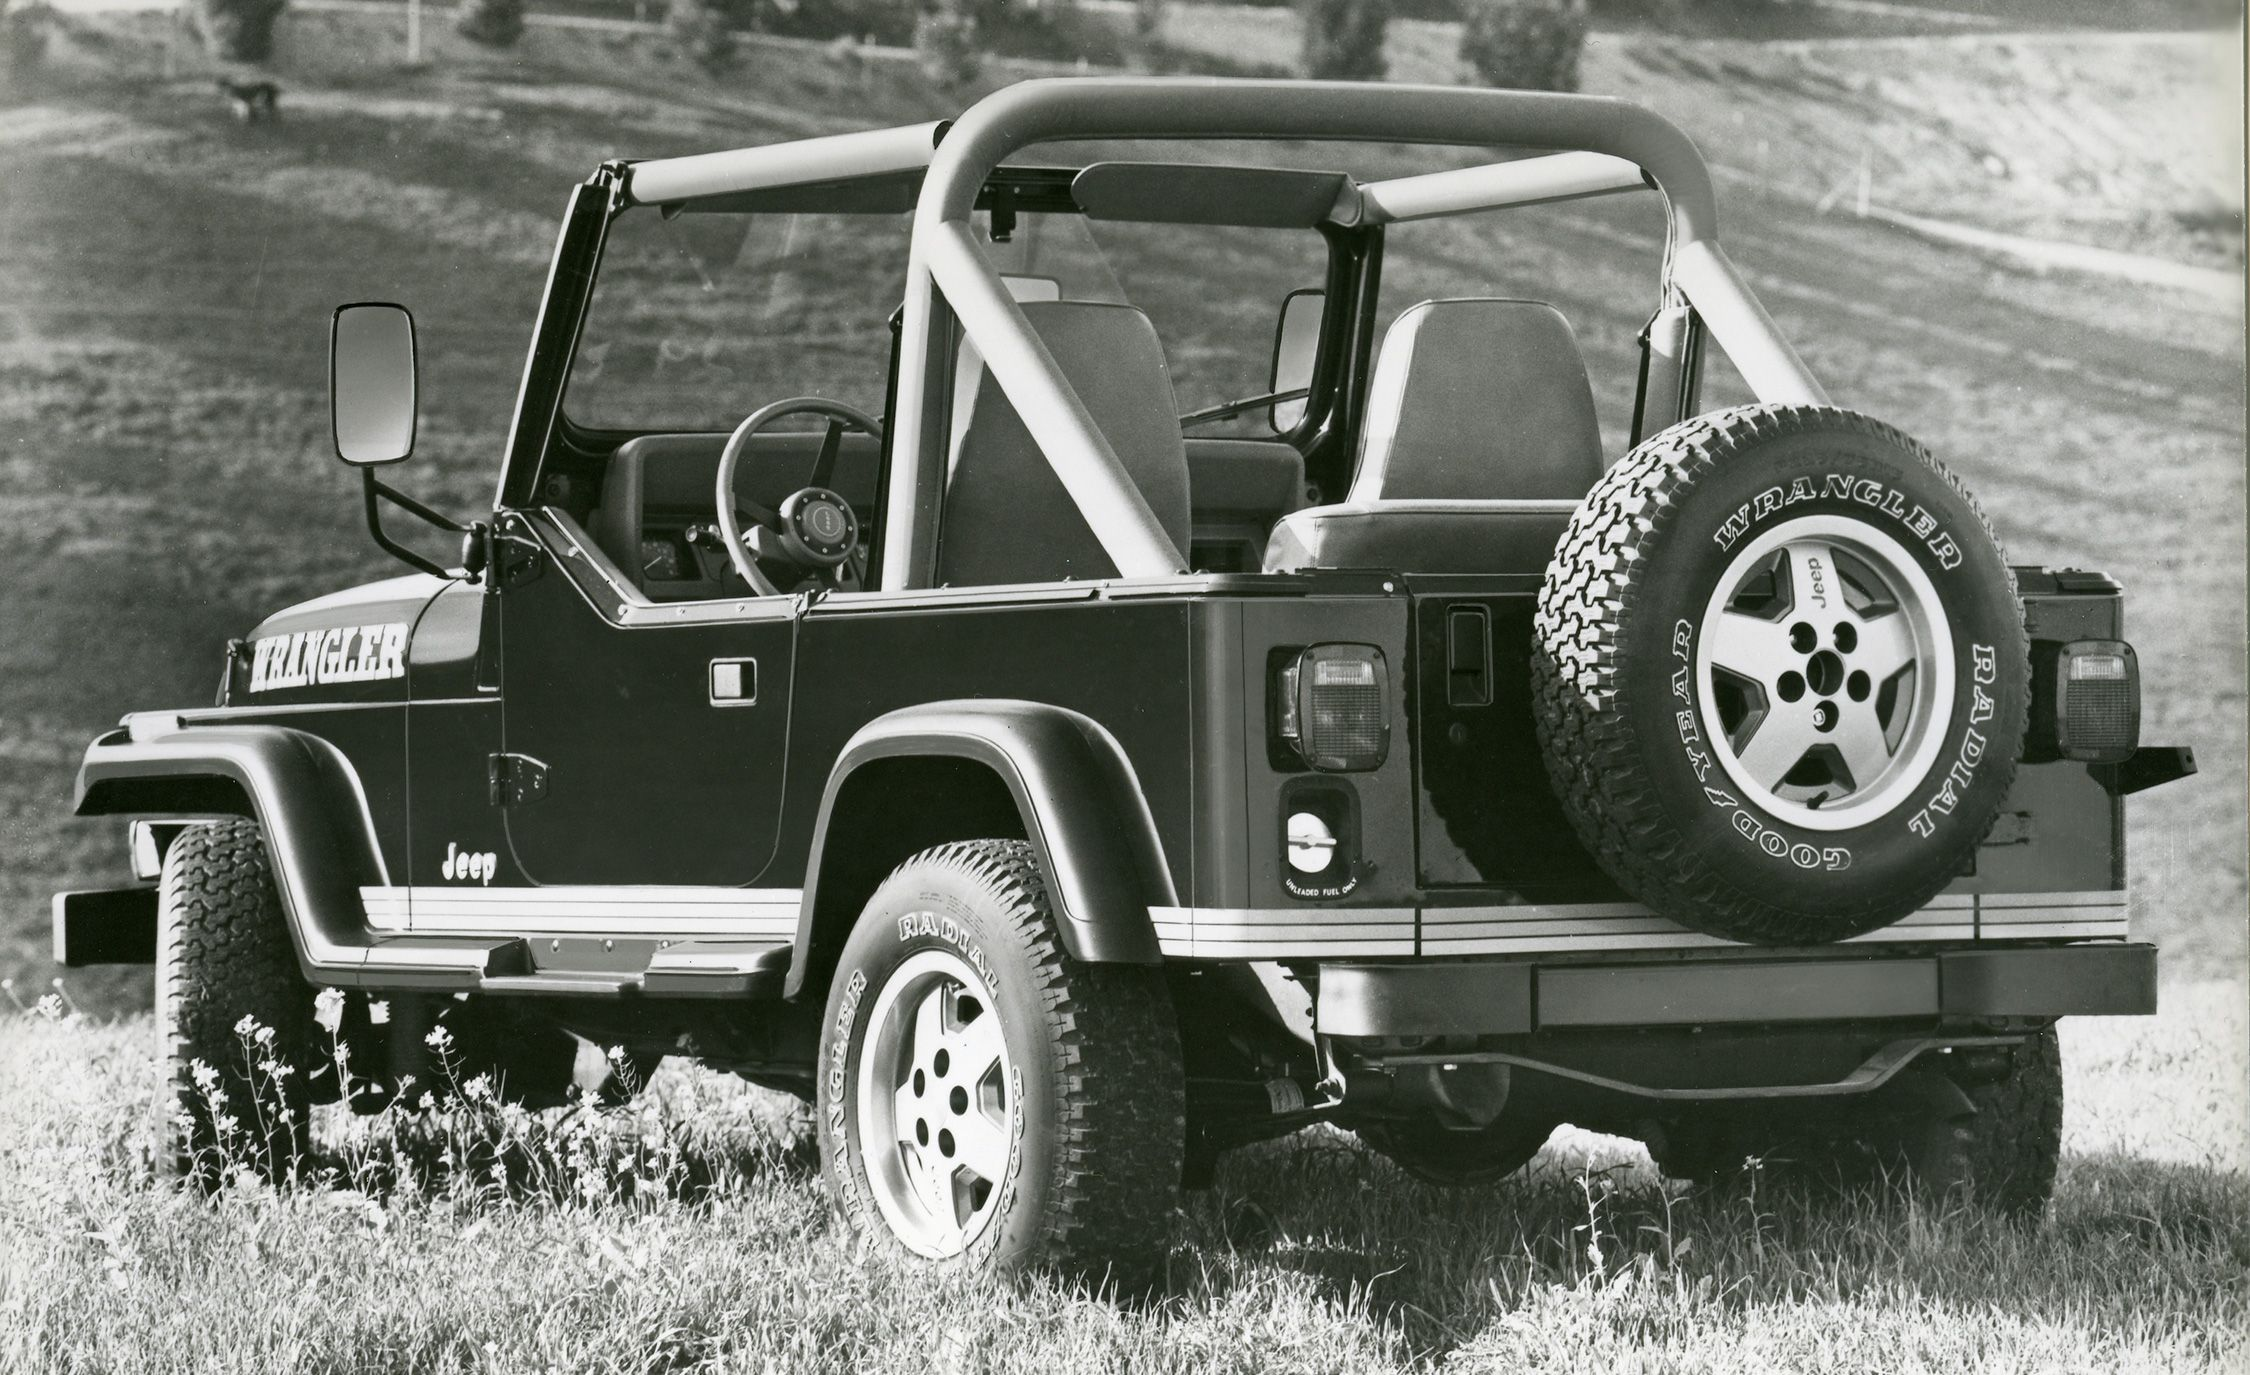 The Complete Visual History Of Jeep Wrangler From 1986 To Present Door Latch Diagrams